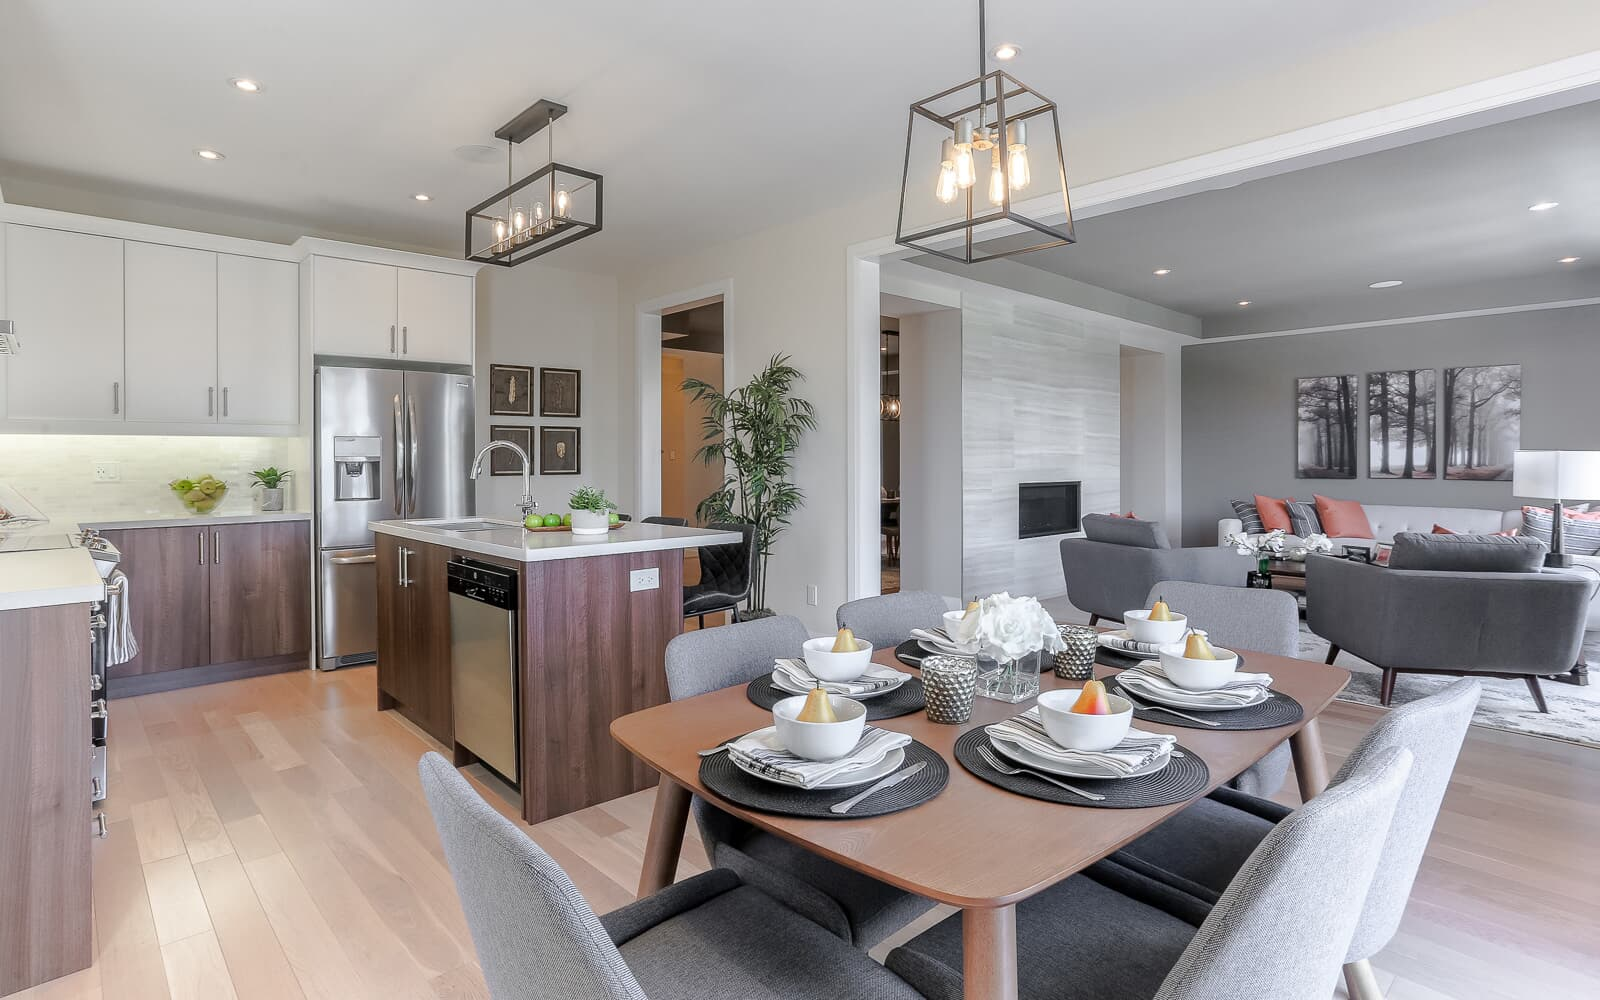 Kitchen, Living and Dining Room at Revelstoke Model Home | Revelstoke at Pinehurst in Paris | Paris, ON | Brookfield Residential